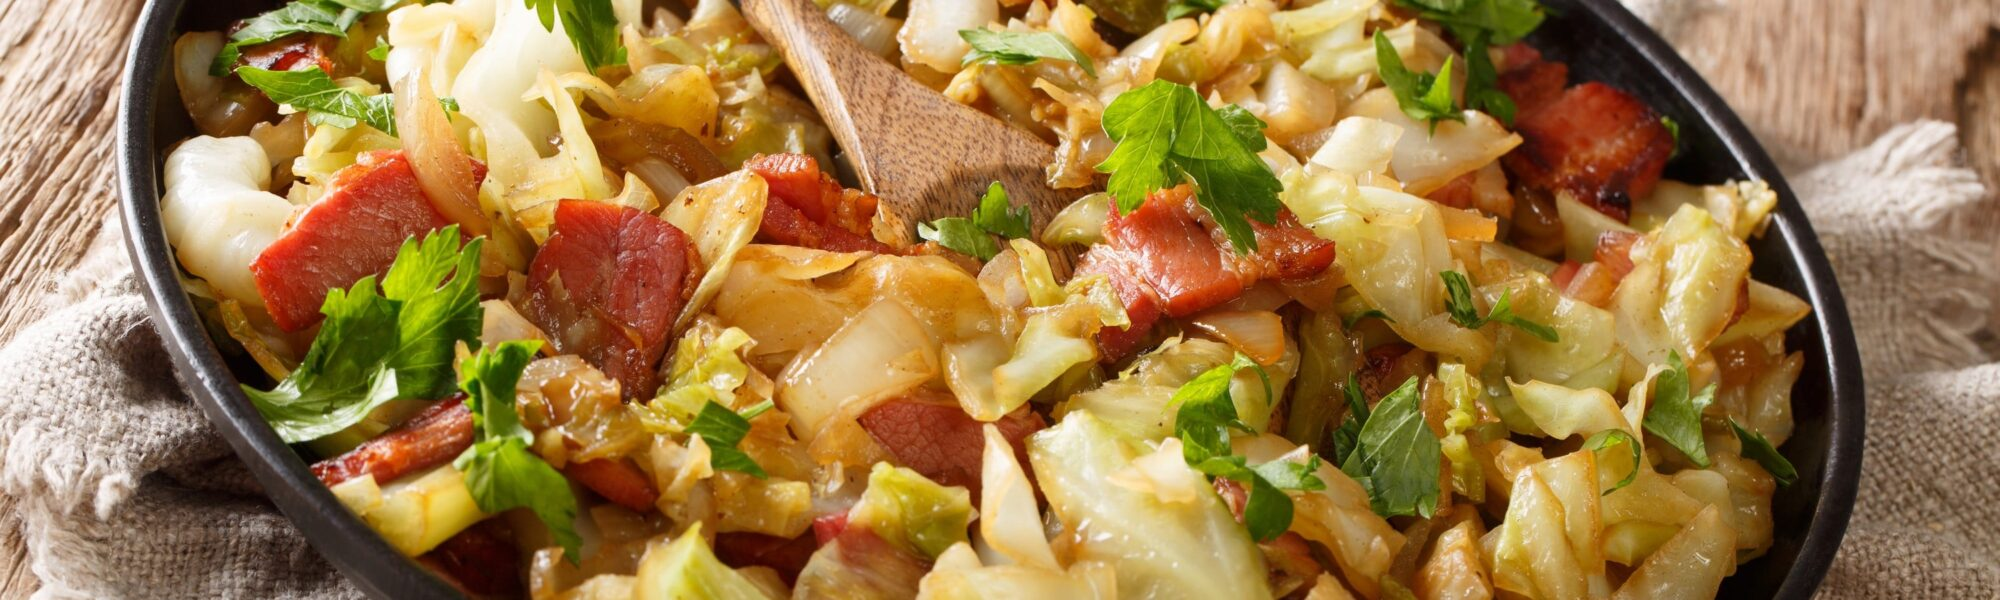 Du Fried cabbage with bacon - © AS Food studio